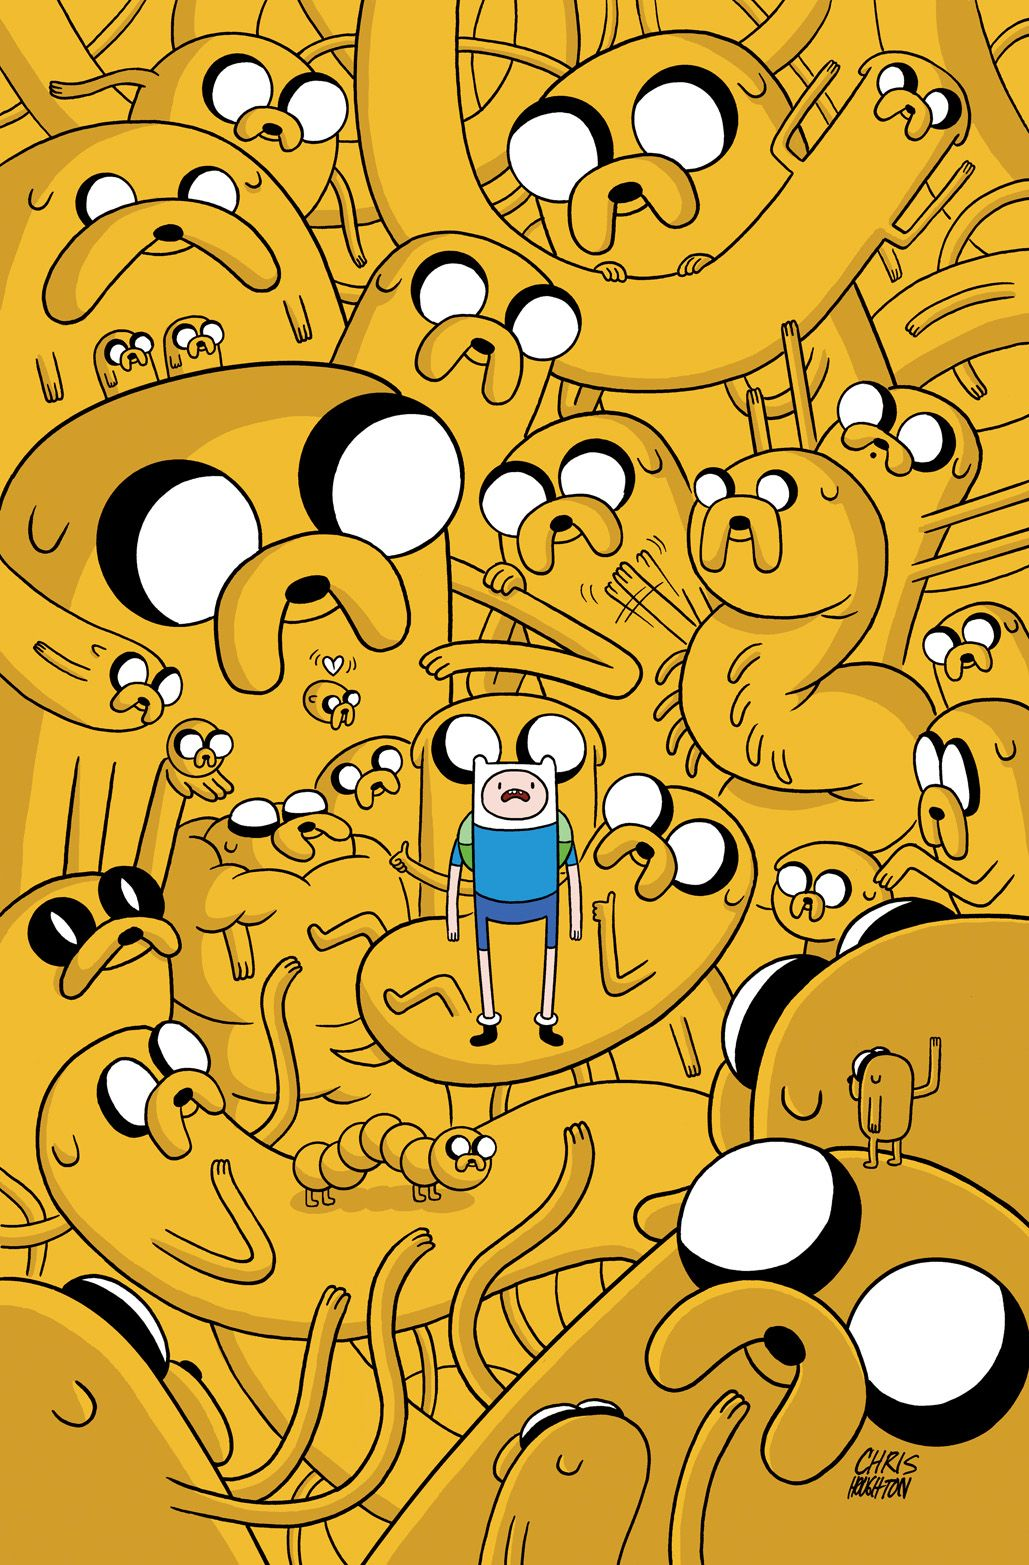 Adventure Time Comic 8 Covers Cartoon, Wallpaper and